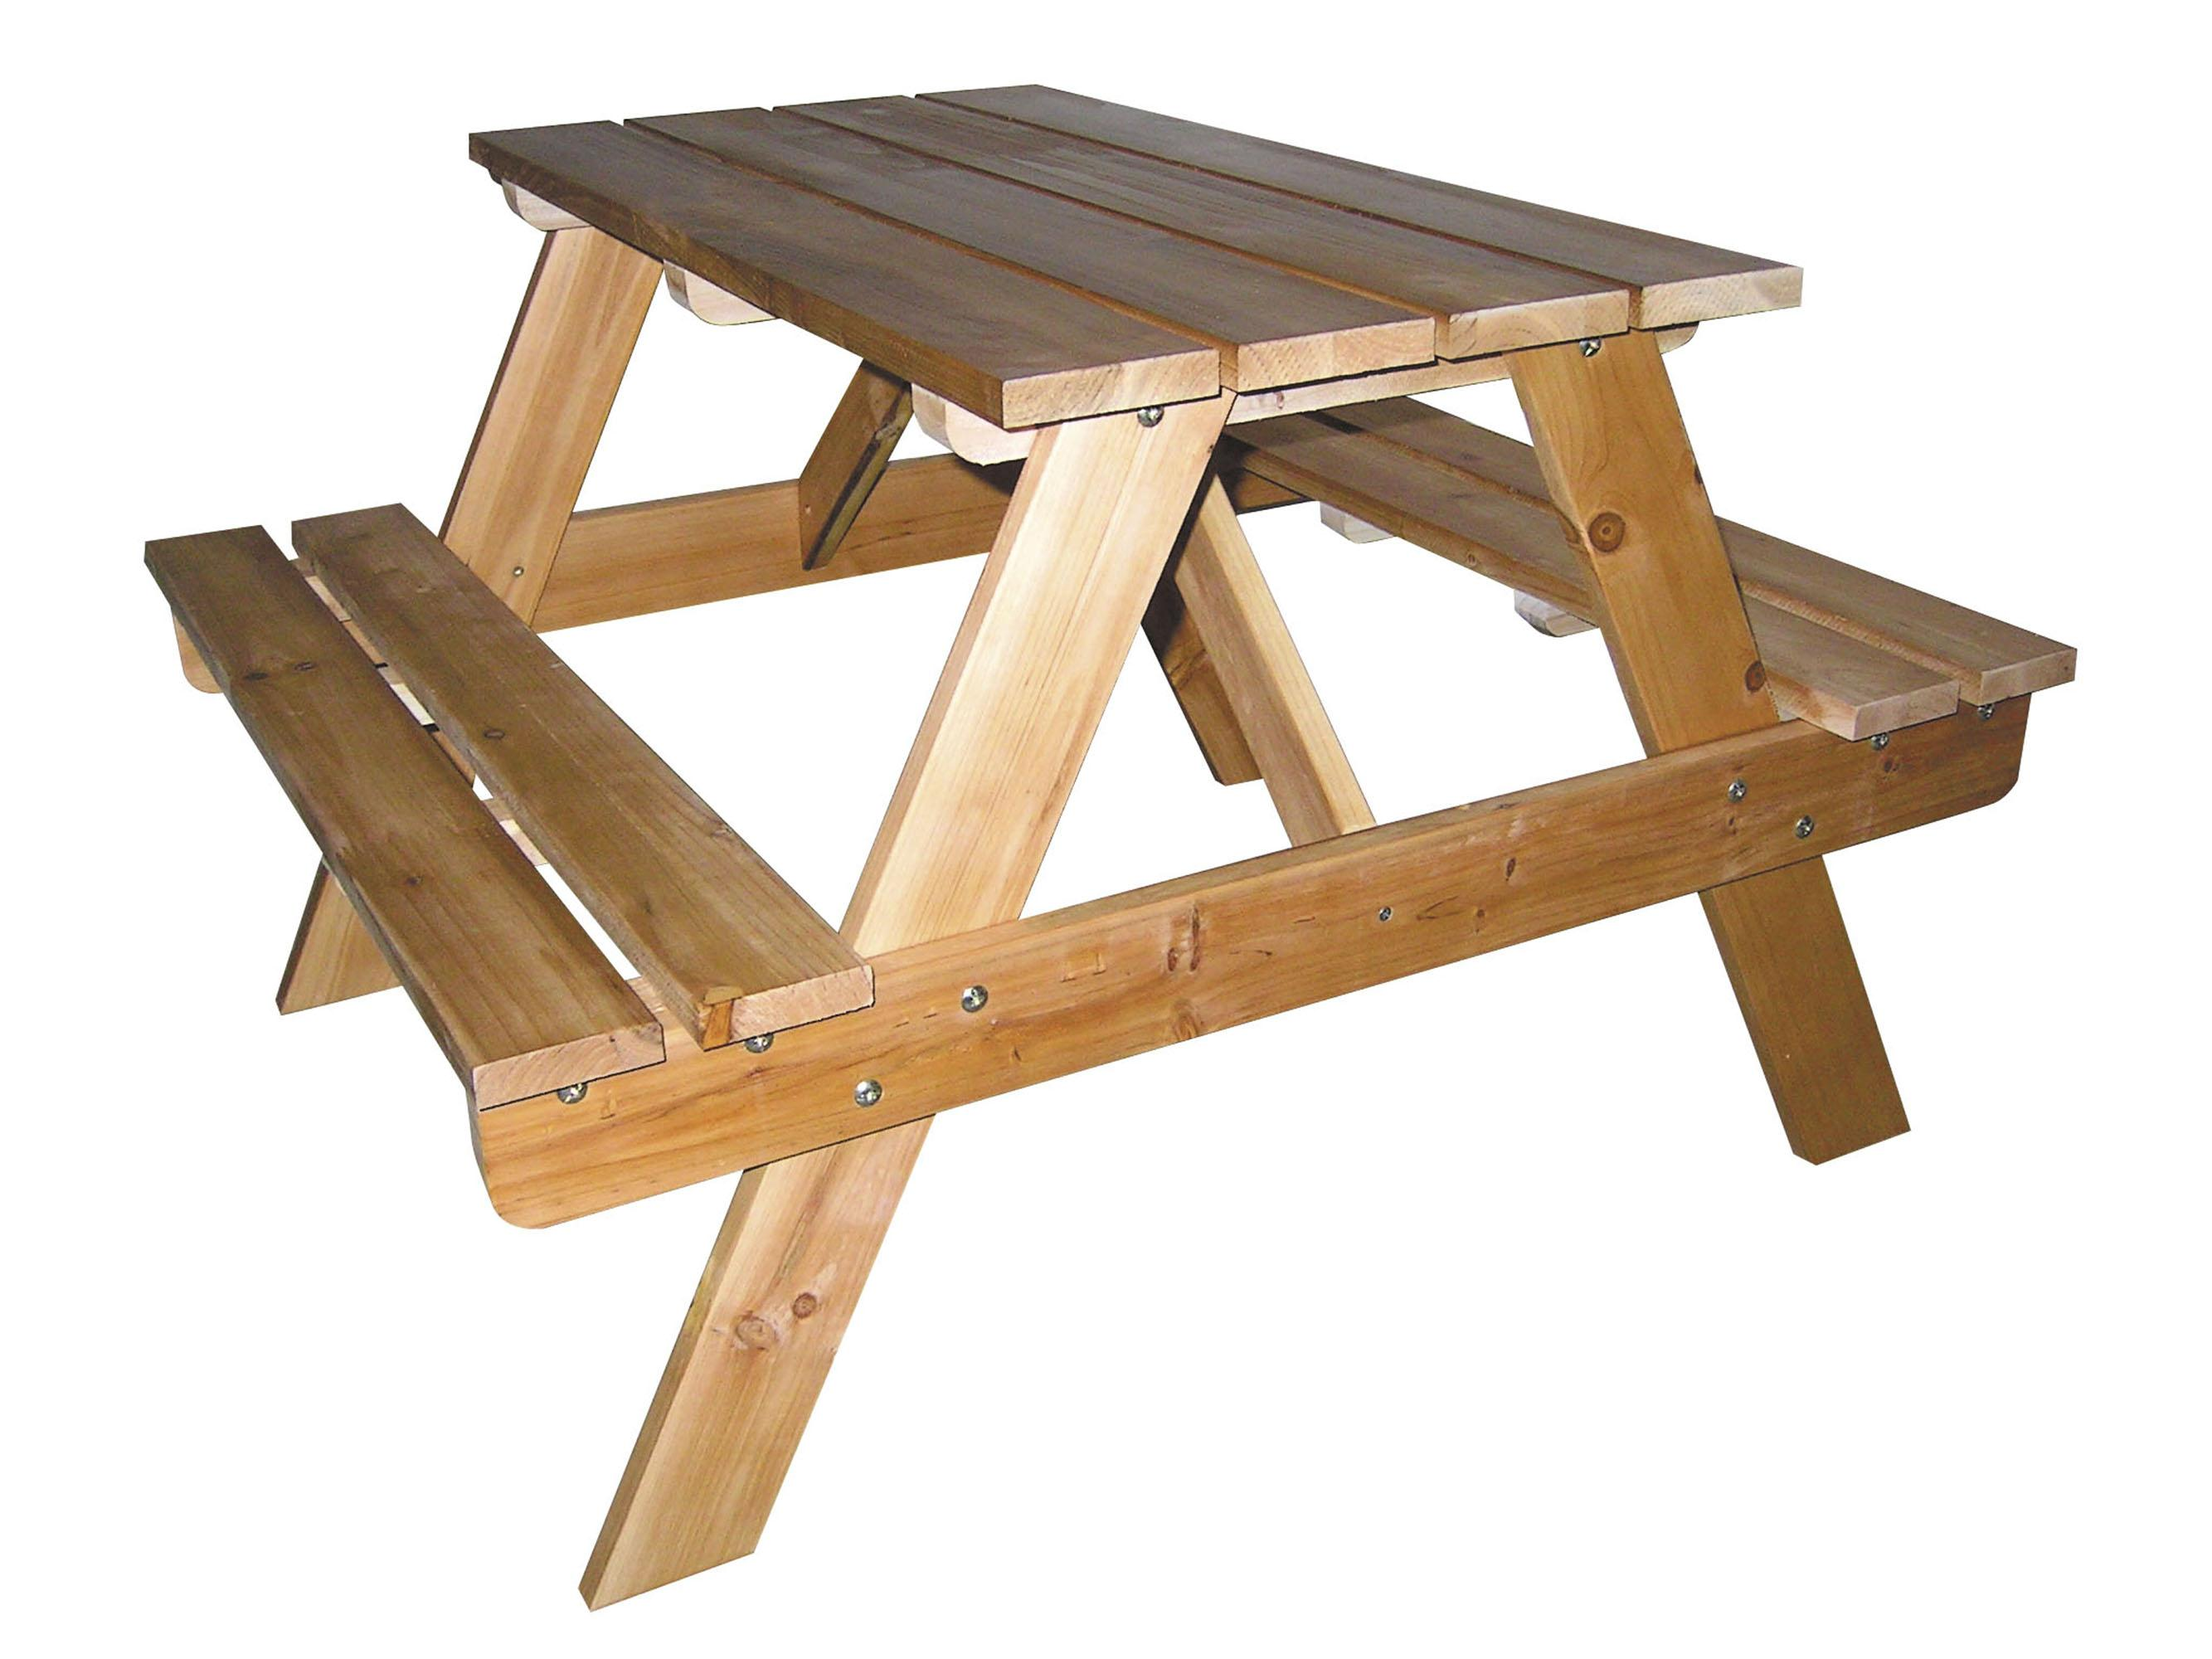 Woodworking outdoor picnic tables PDF Free Download